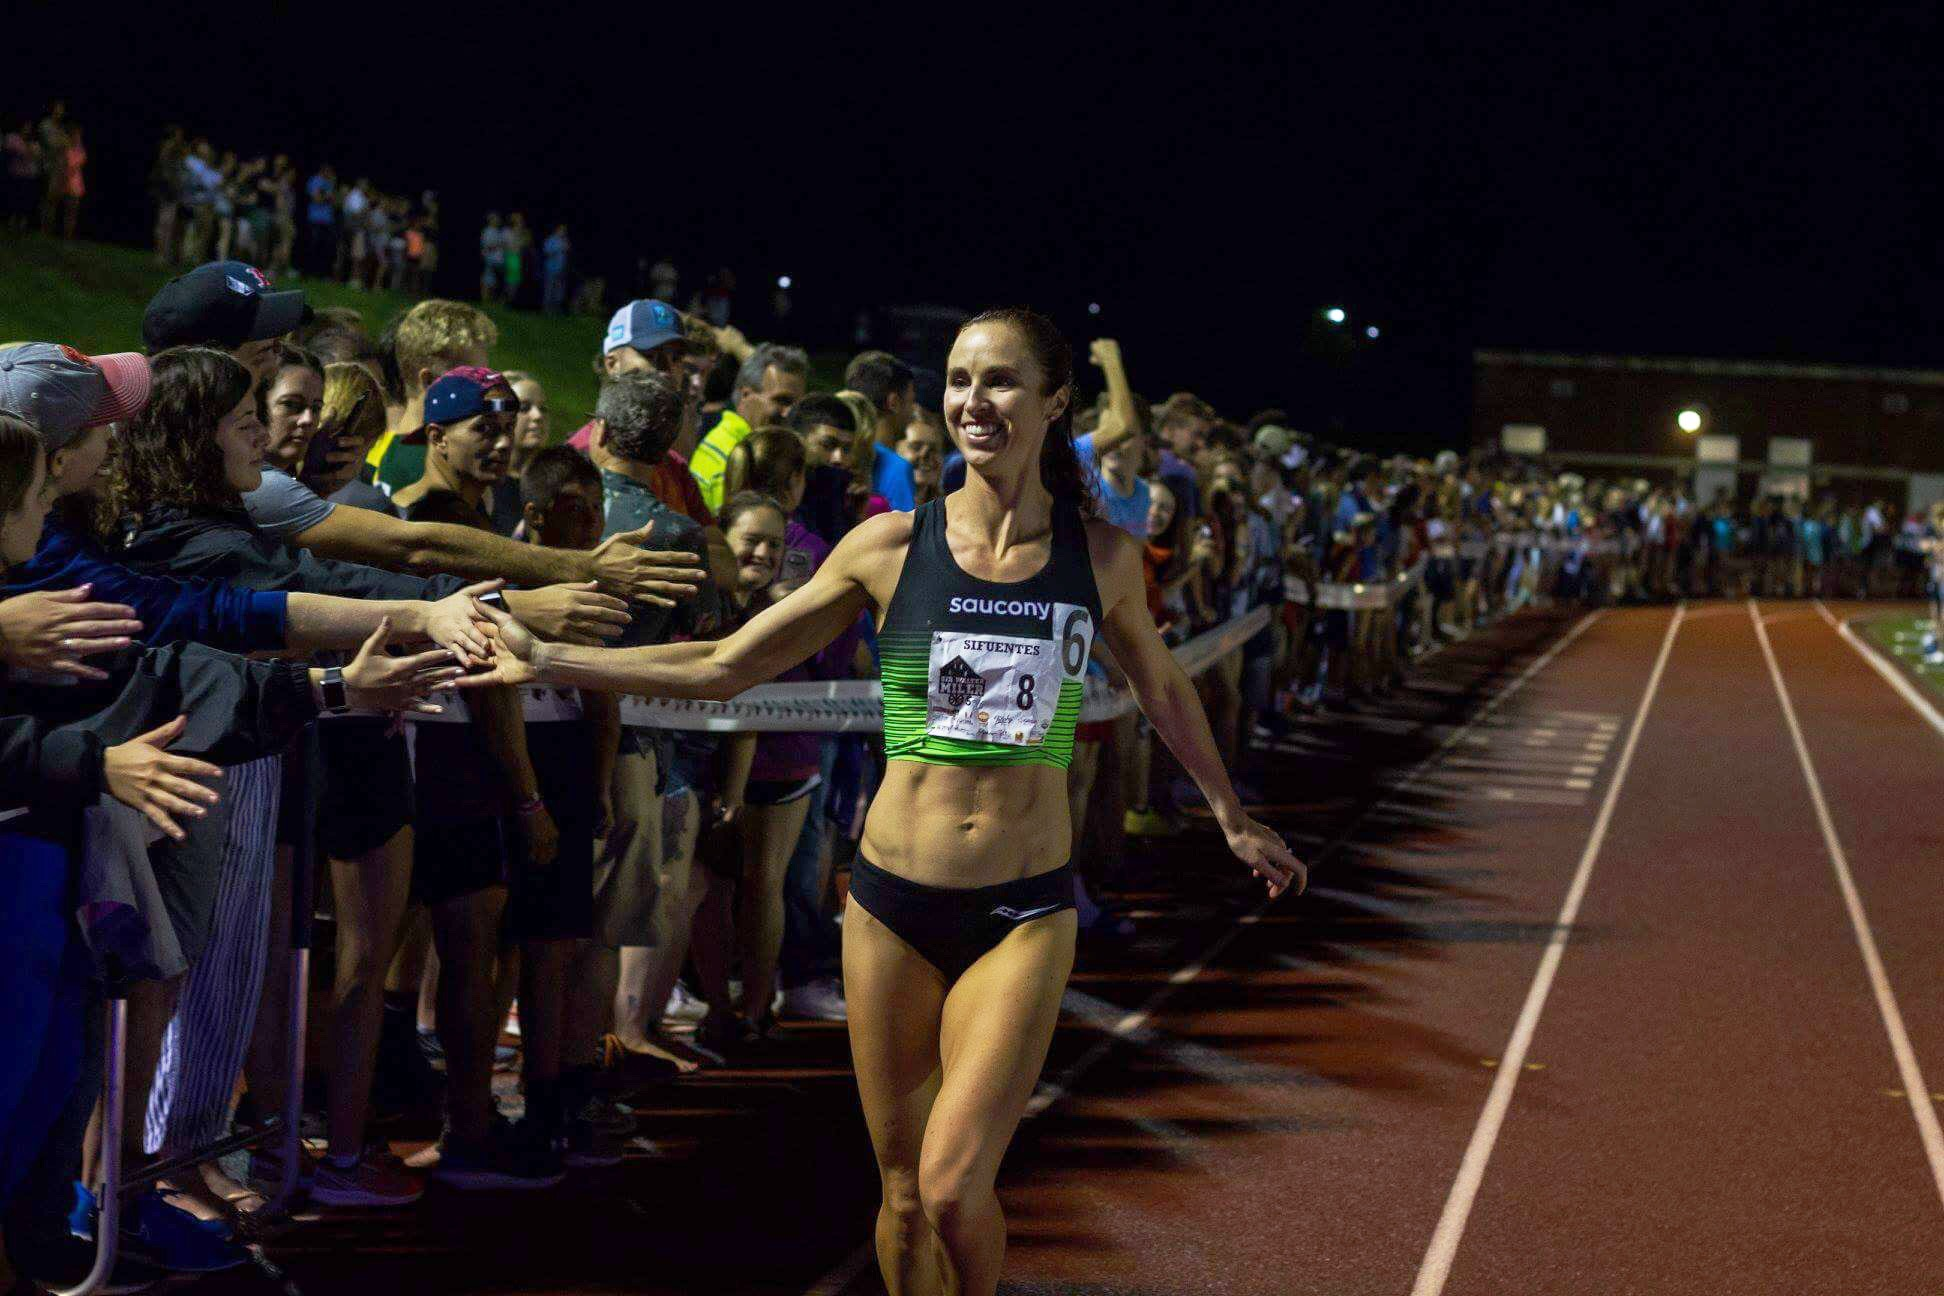 photo by J Honeycutt at the 2018 Sir Walter Miler